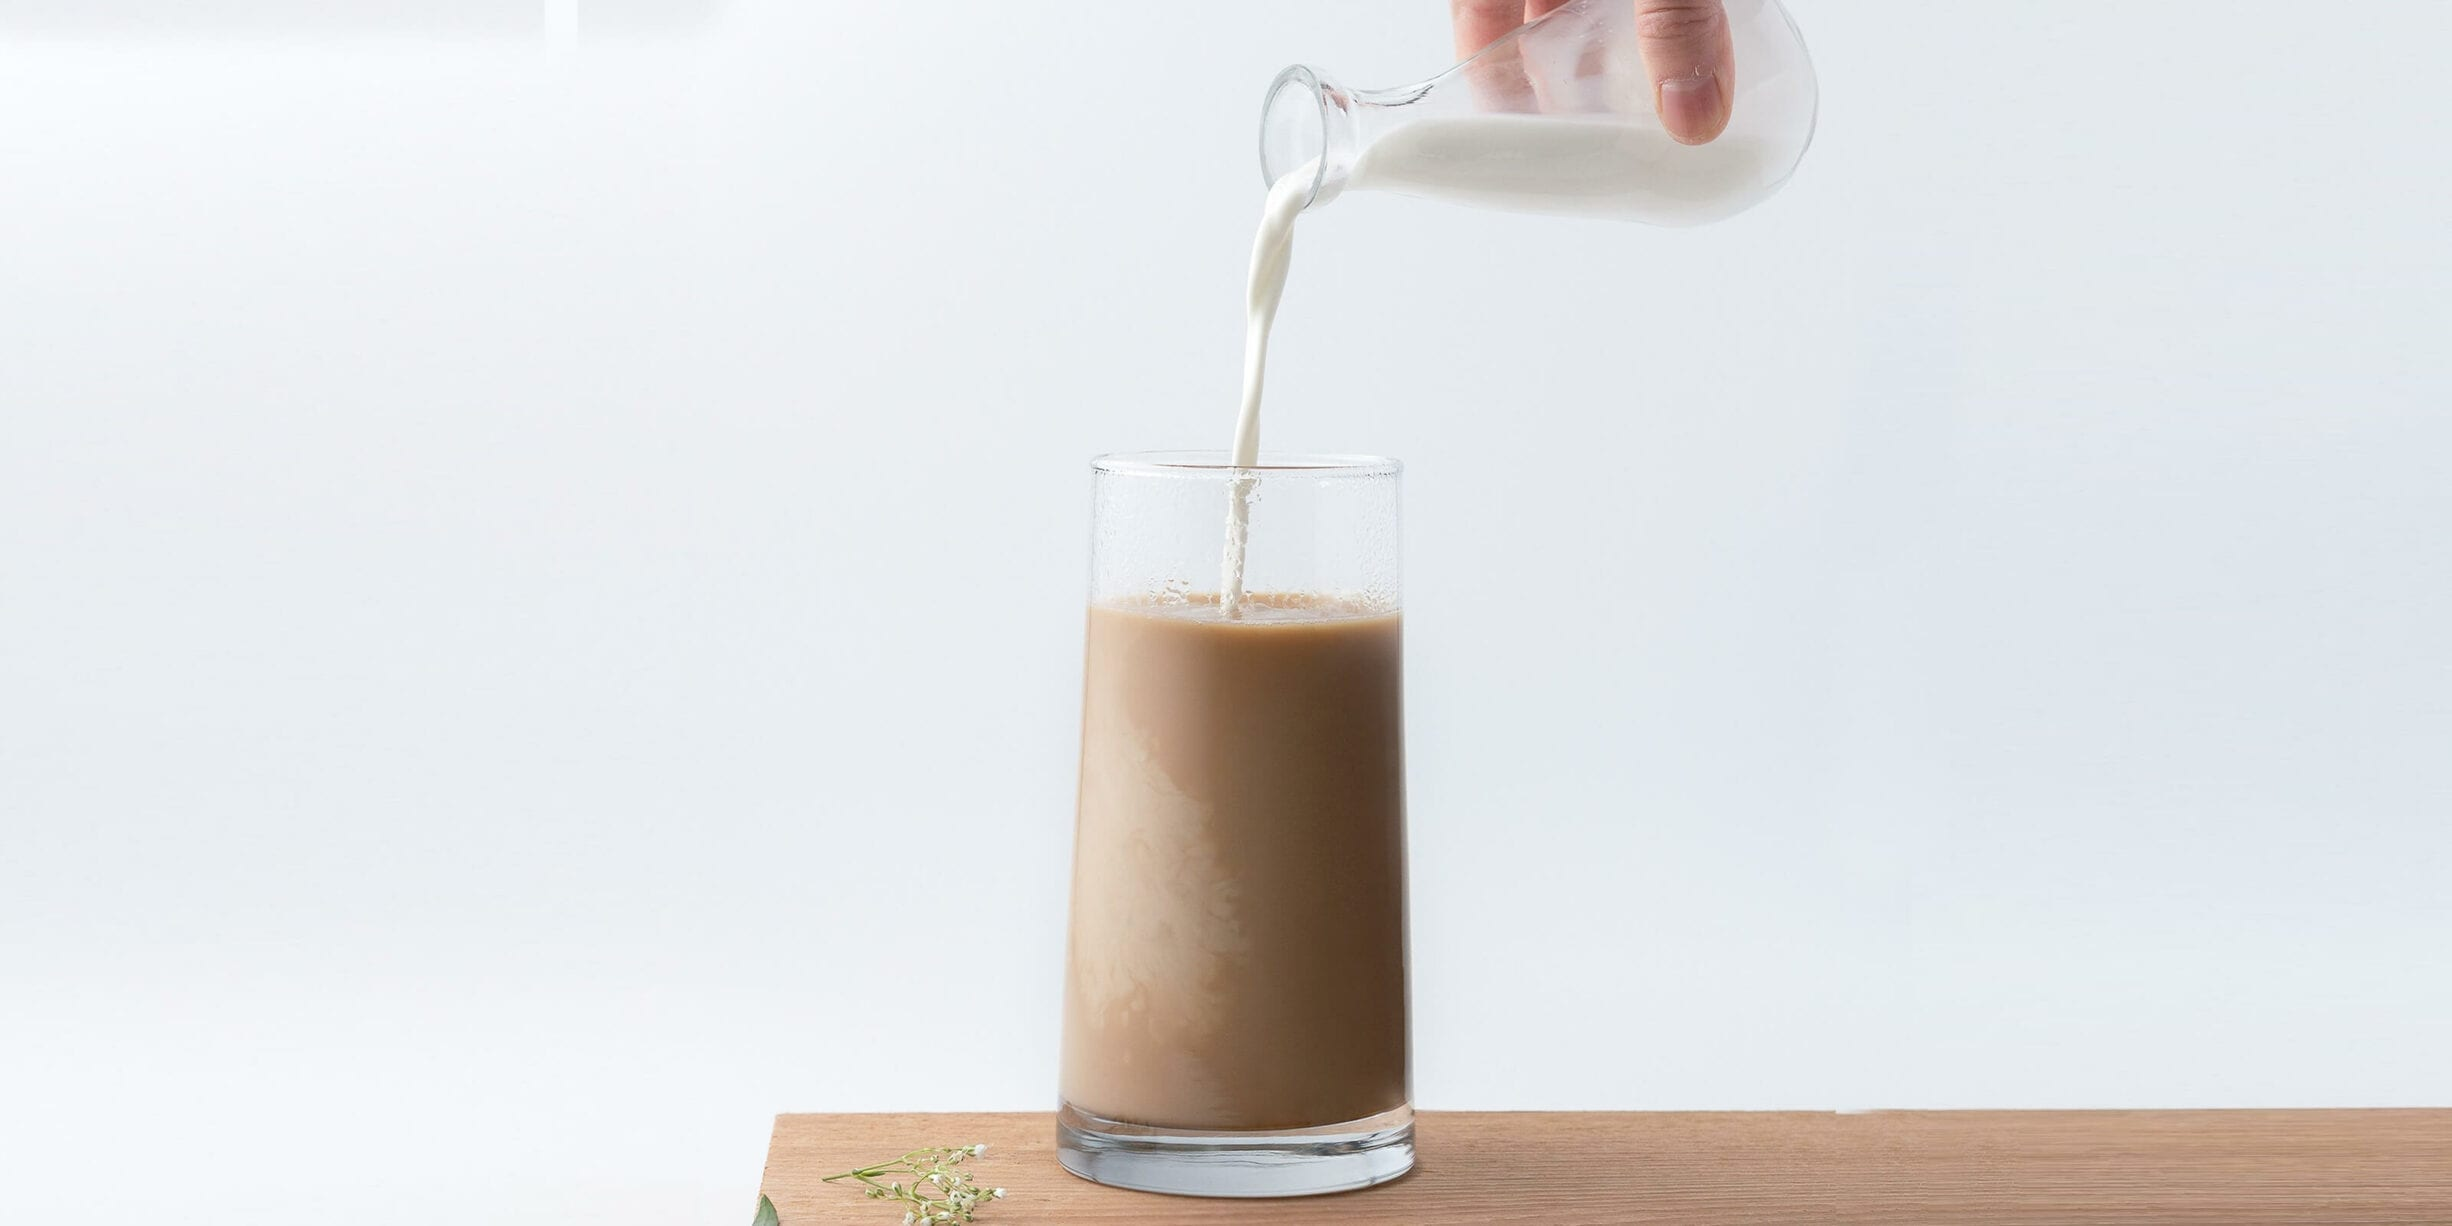 milk being poured into tall glass of coffee